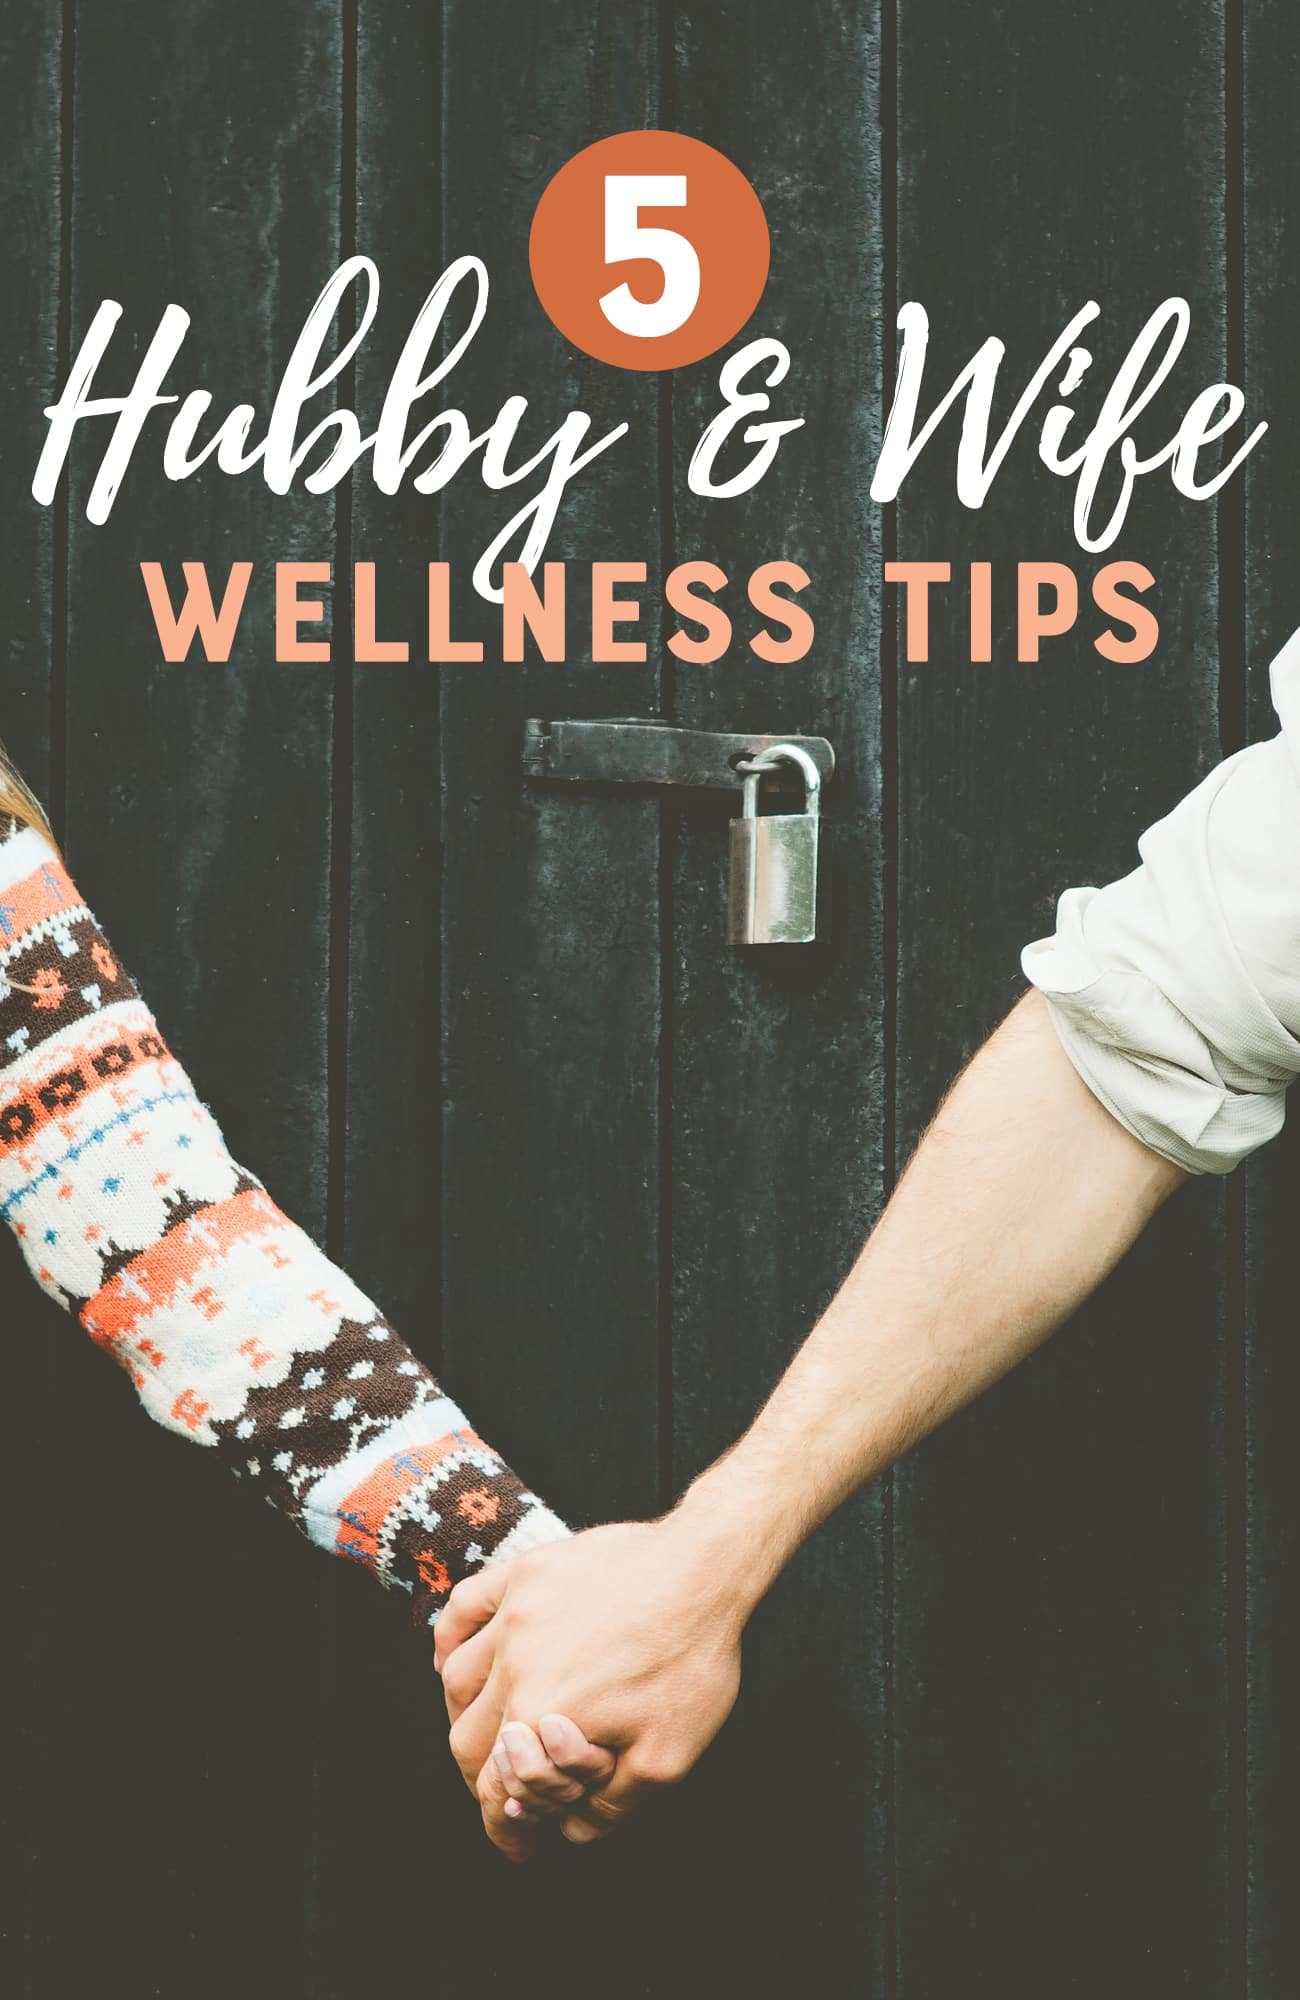 Hubby and Wife Wellness Tips